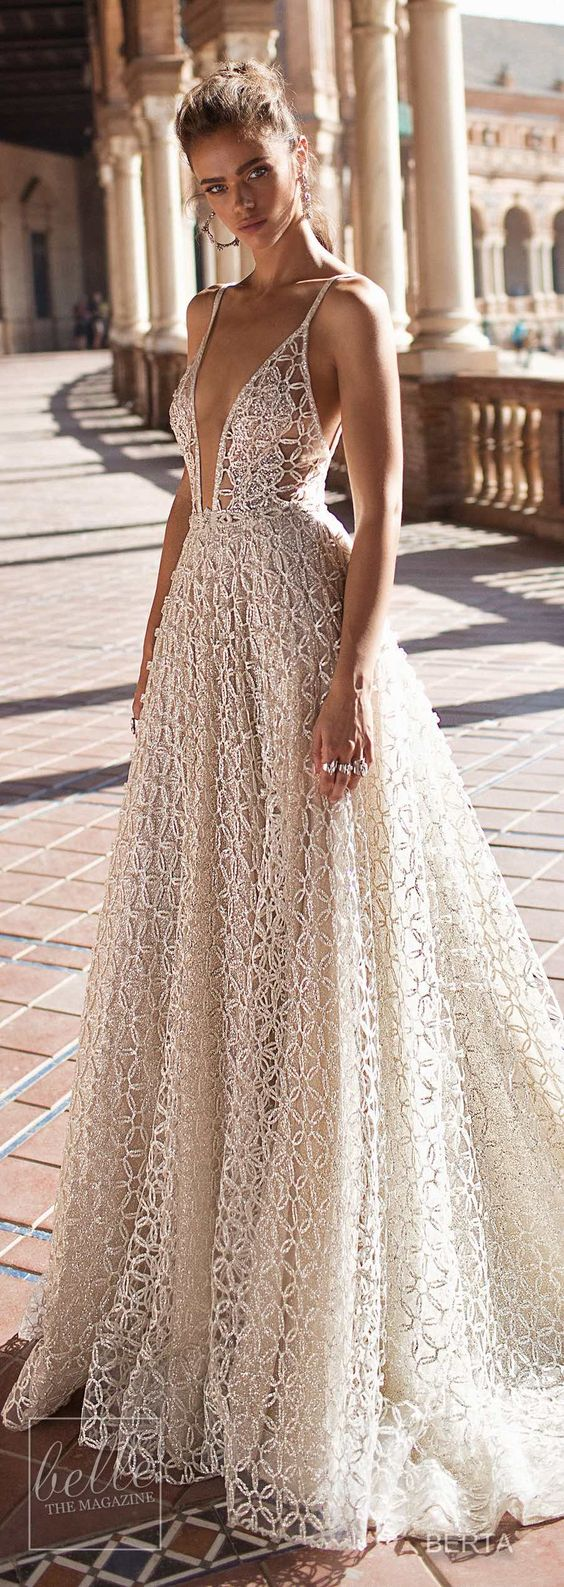 Berta Fall 2018 Seville Wedding Dress Collection